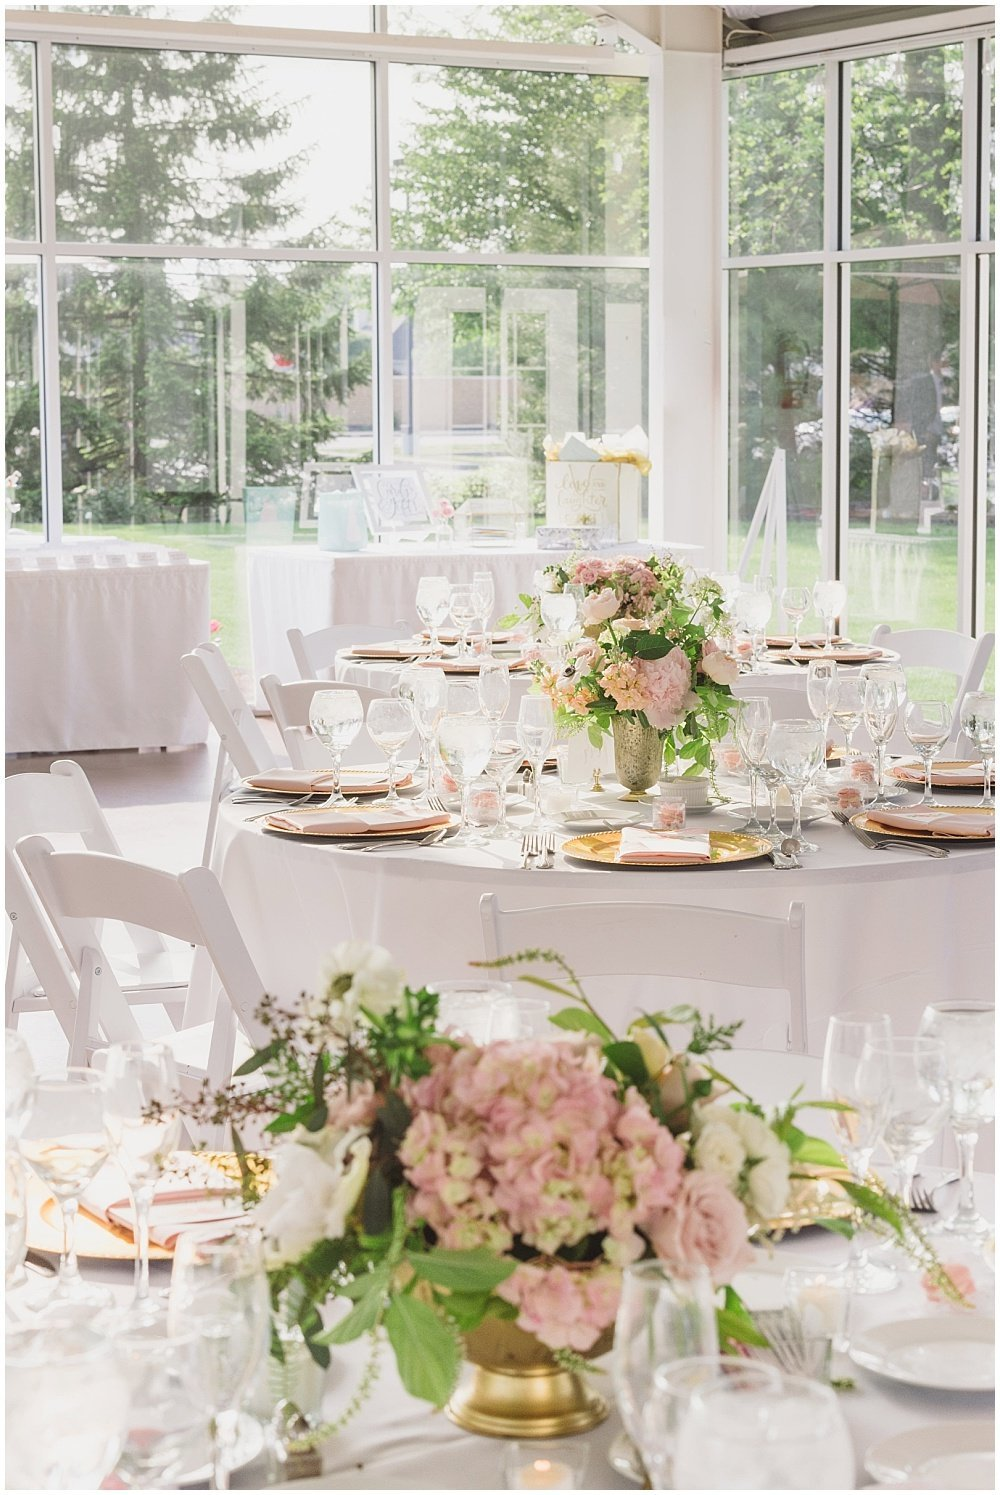 Ritz-Charles-Garden-Pavilion-Wedding-Stacy-Able-Photography-Jessica-Dum-Wedding-Coordination_photo_0042